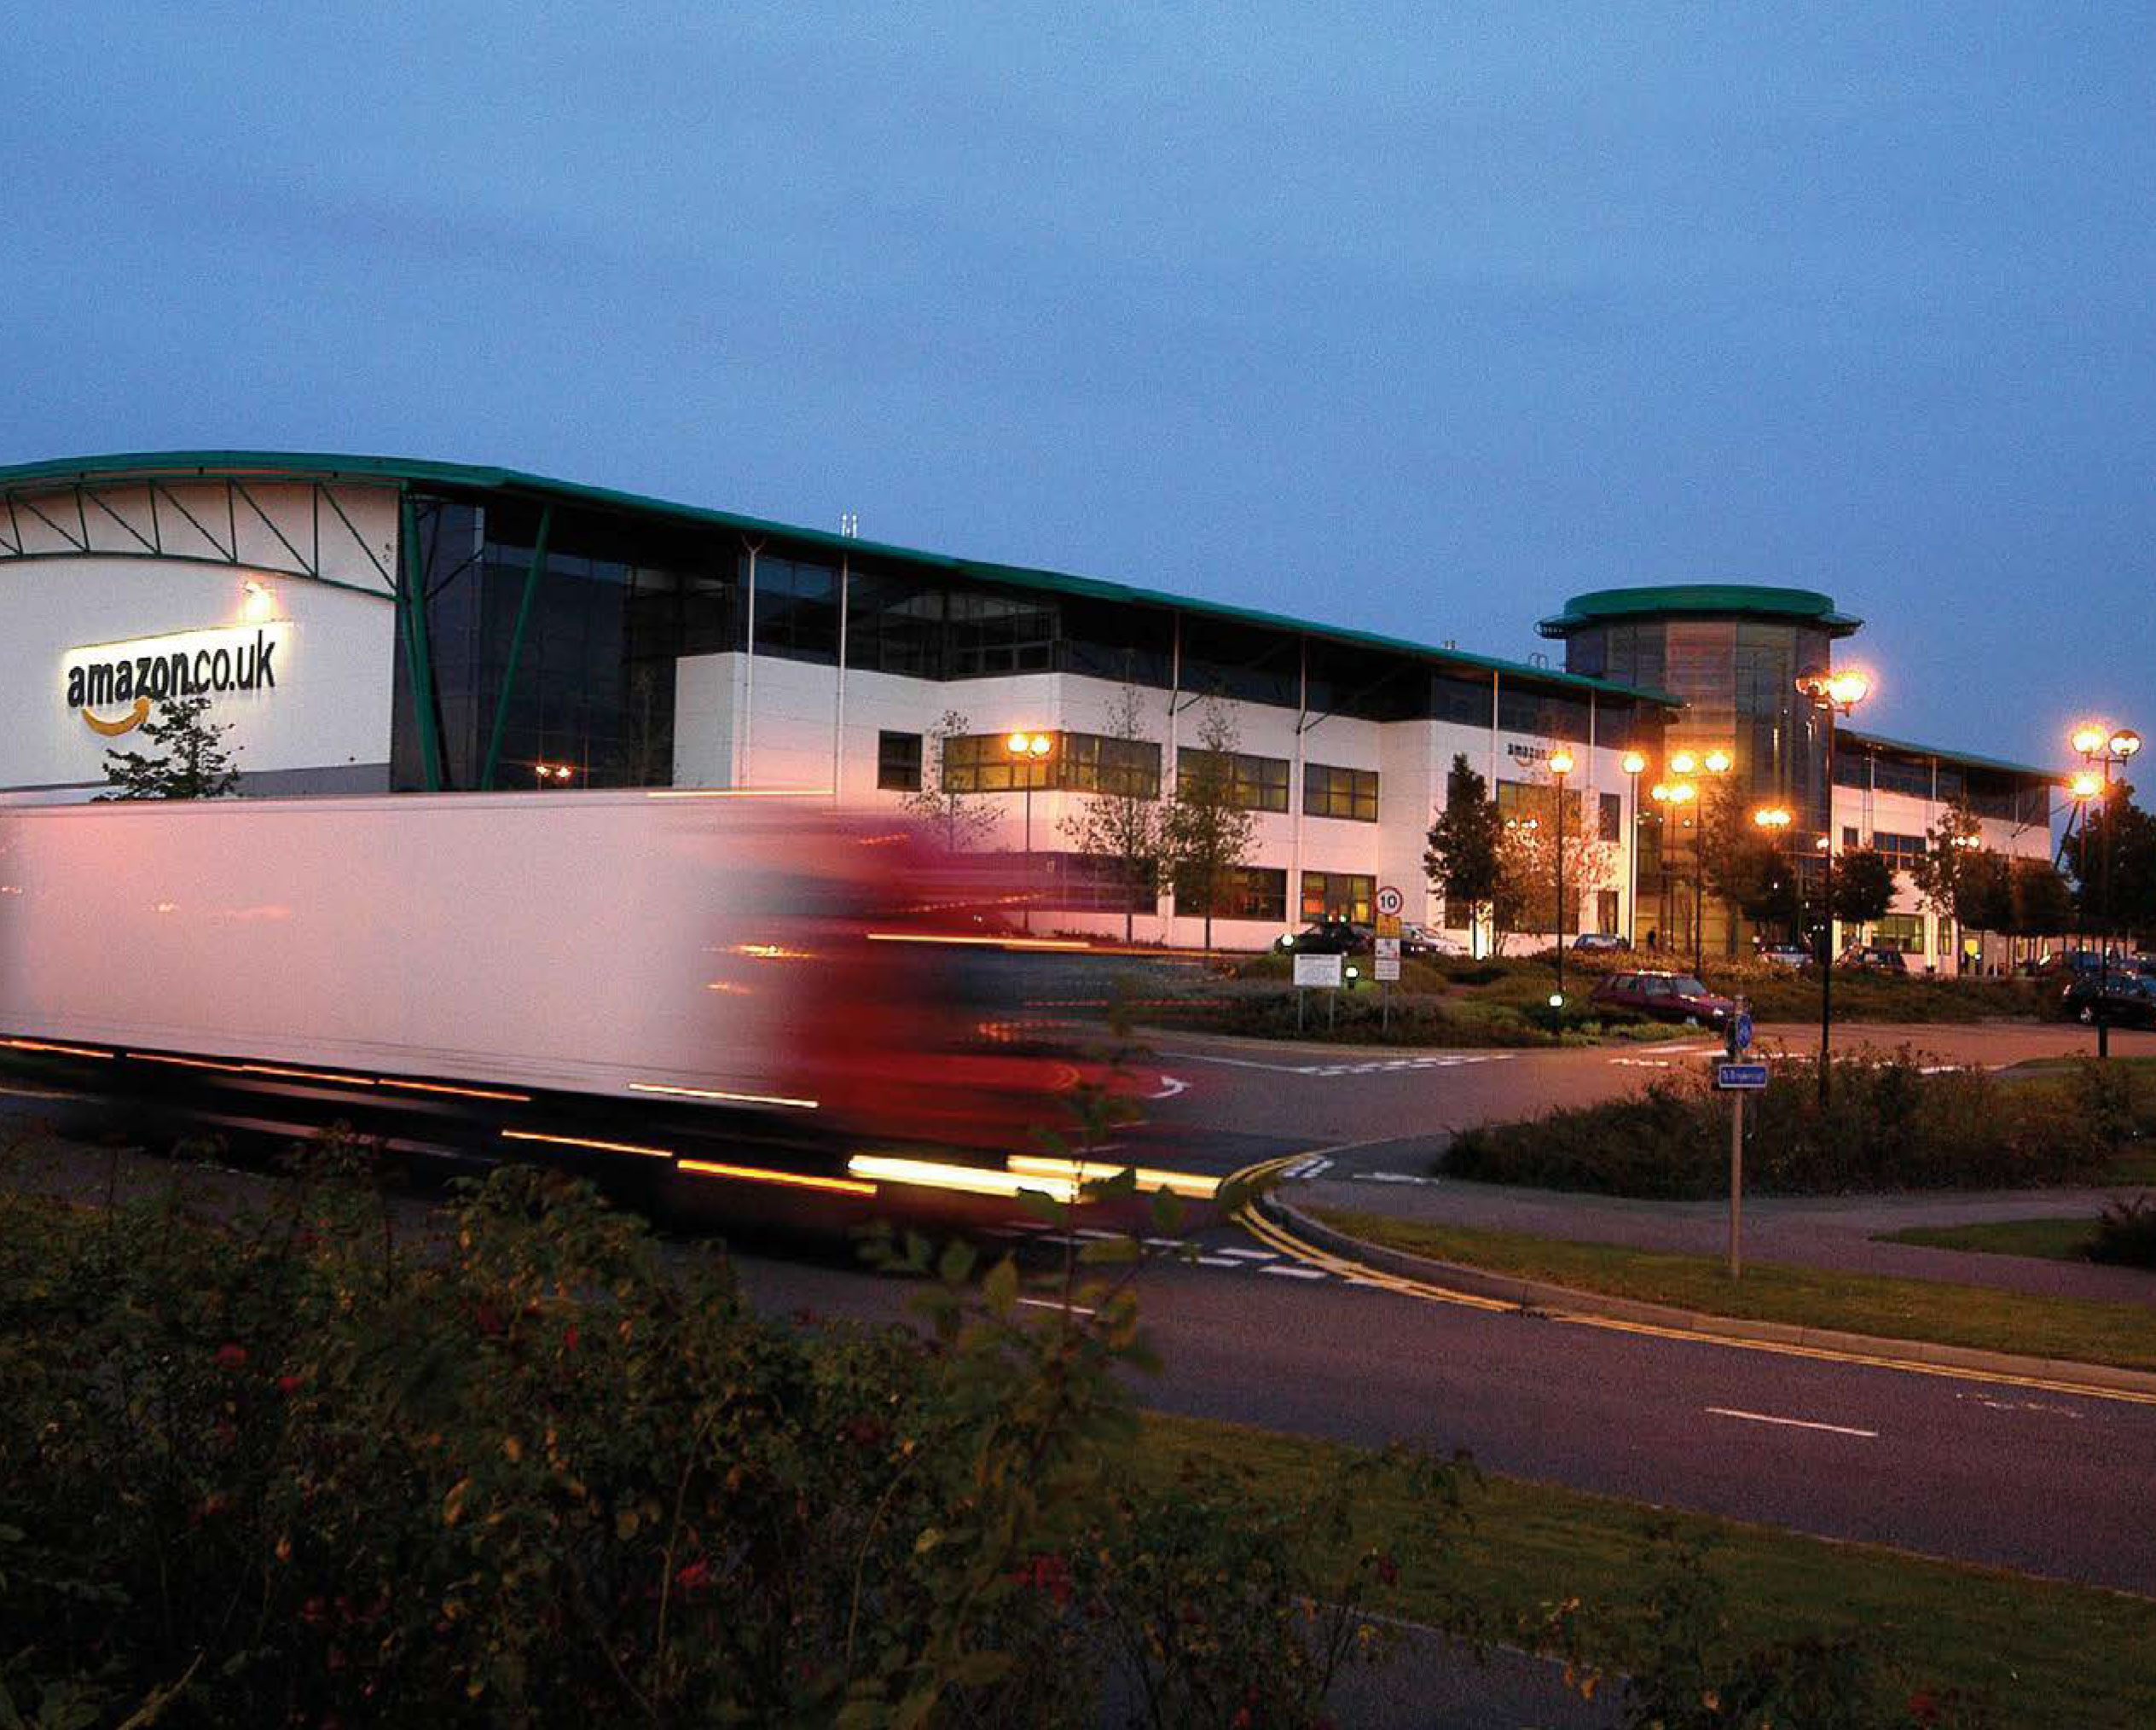 Prologis Park Marston Gate, United Kingdom